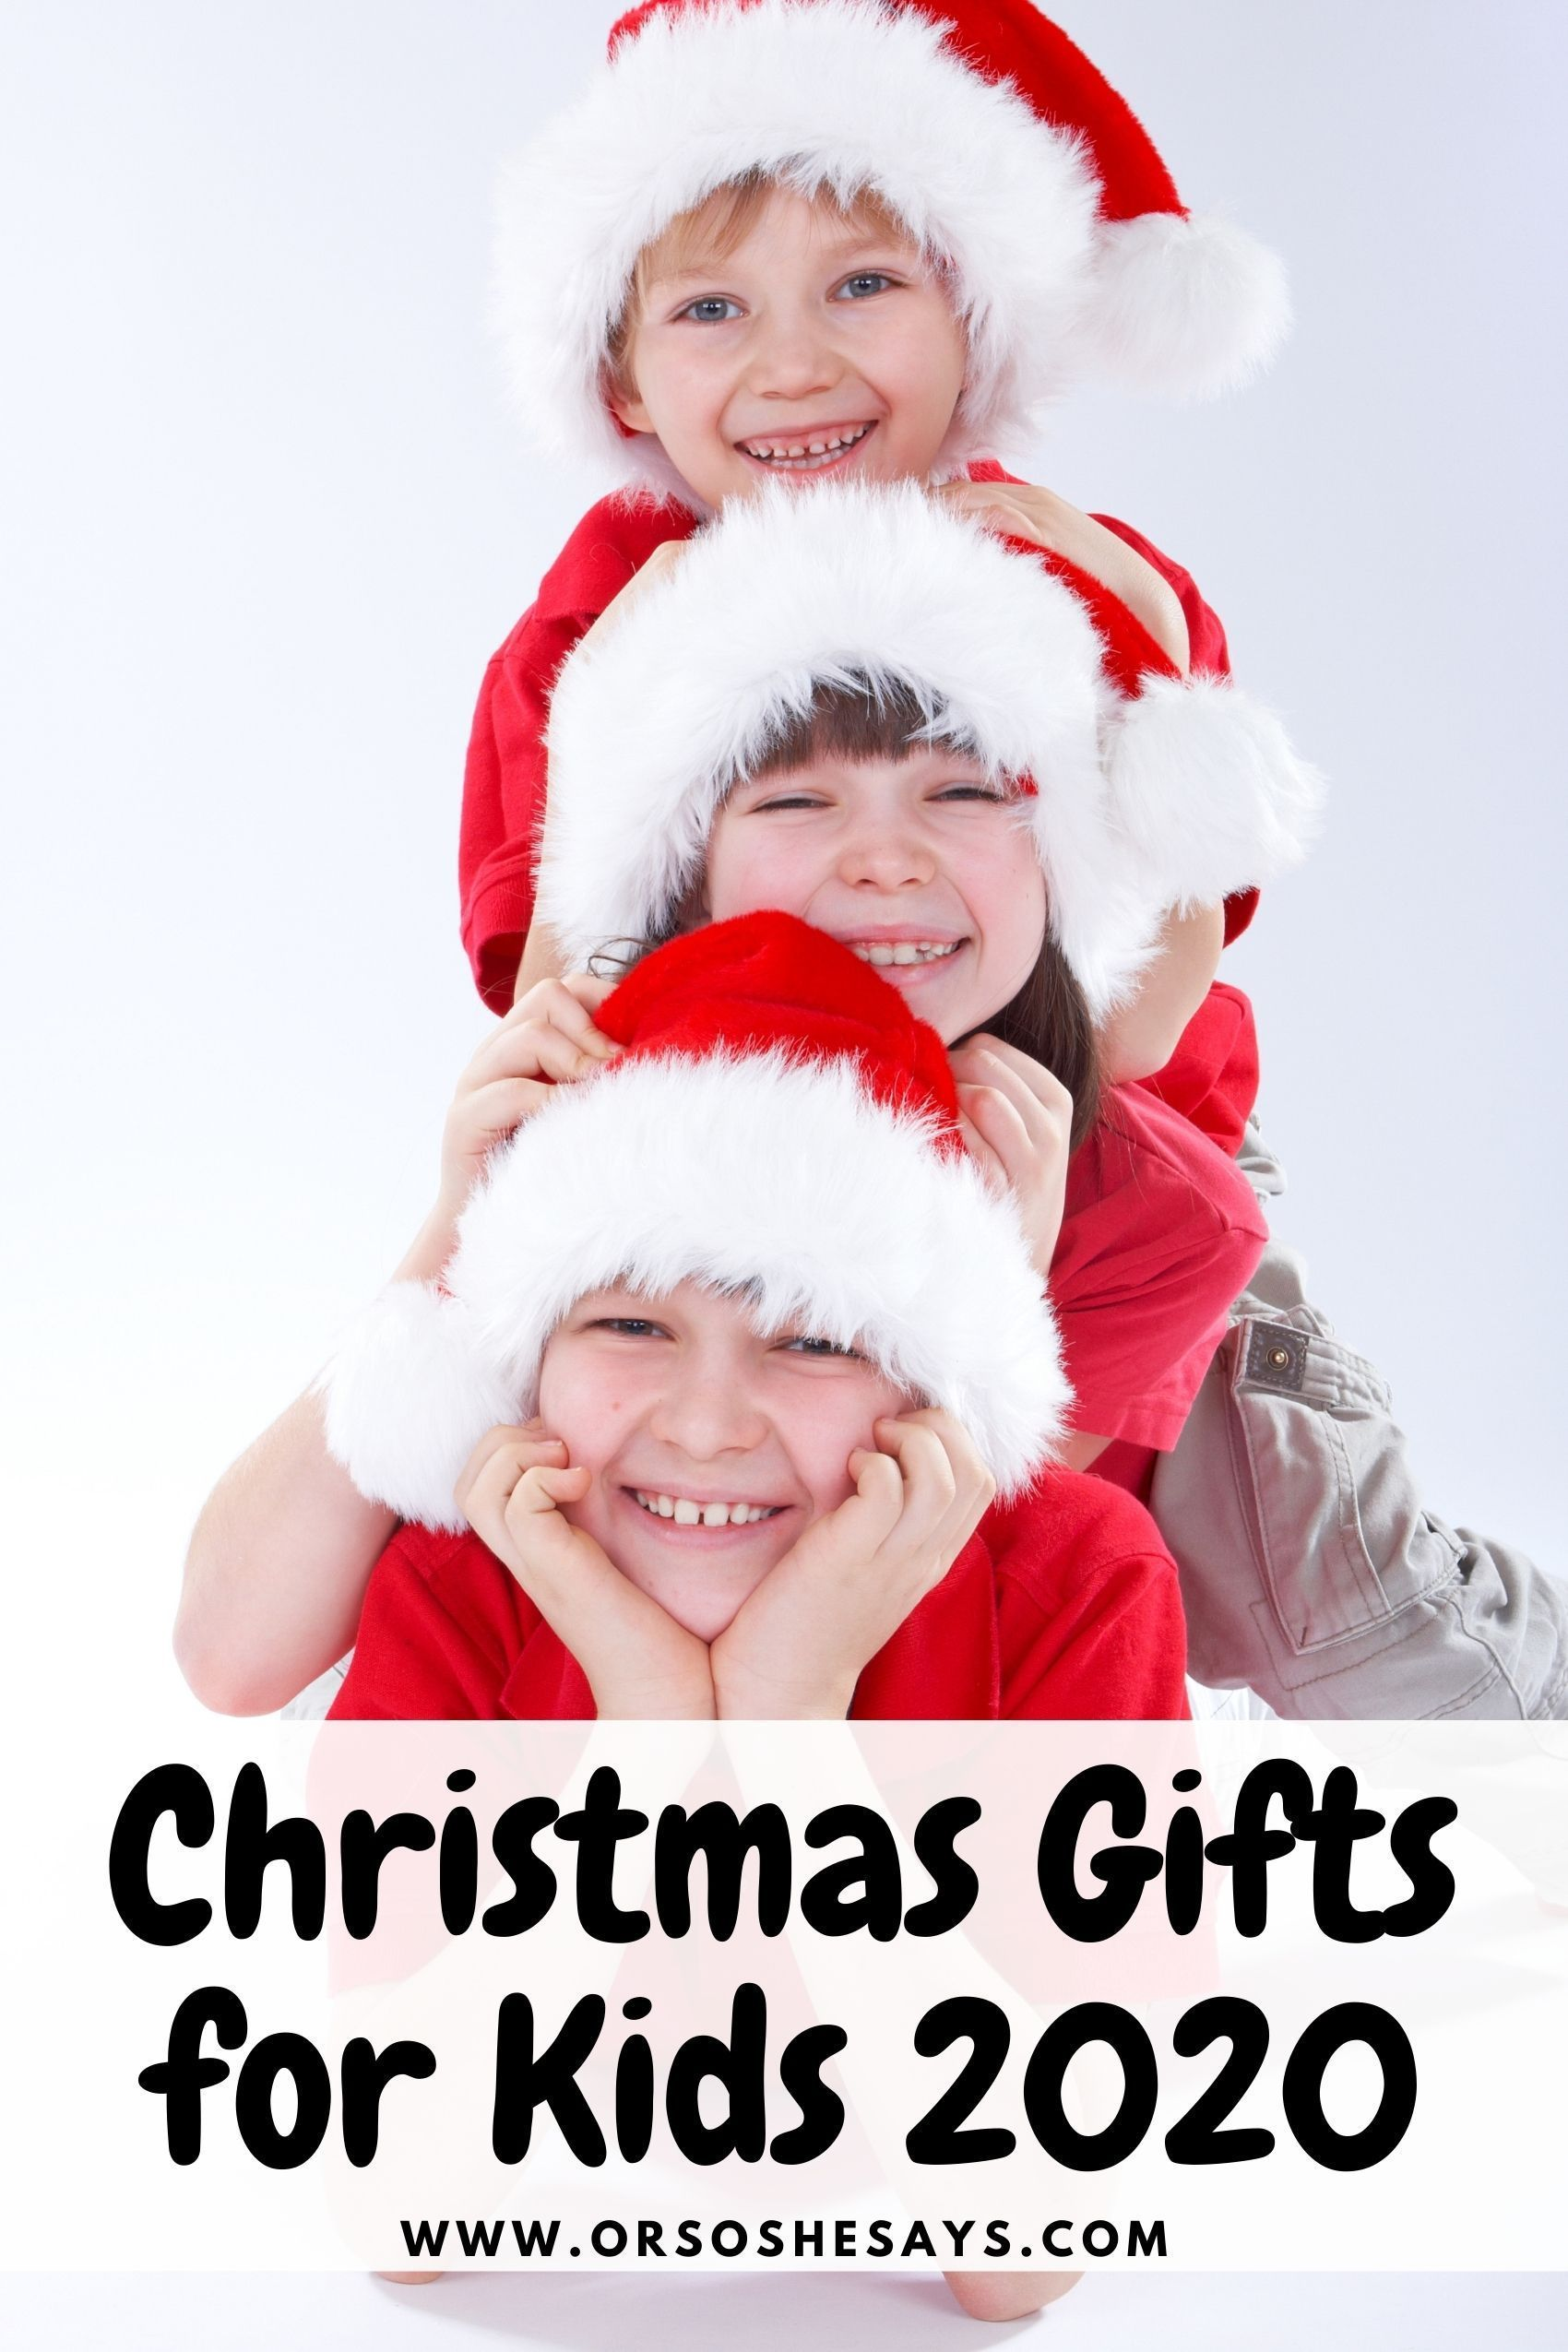 Lots Of Christmas Gifts 2021 Christmas Gifts For Kids 2020 She Picks In 2021 Christmas Gifts For Kids Christmas Gifts For Boys Christmas Presents For Kids